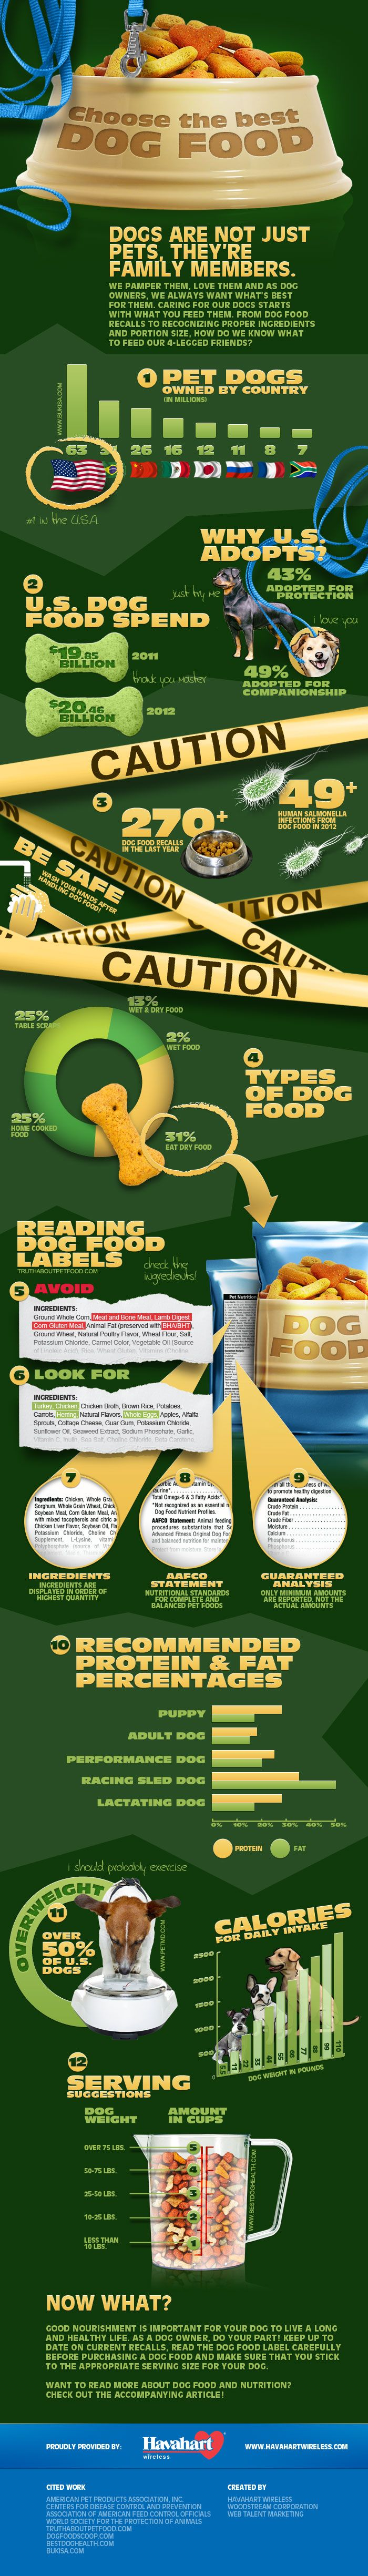 Choose the Right Dog Food Infographic